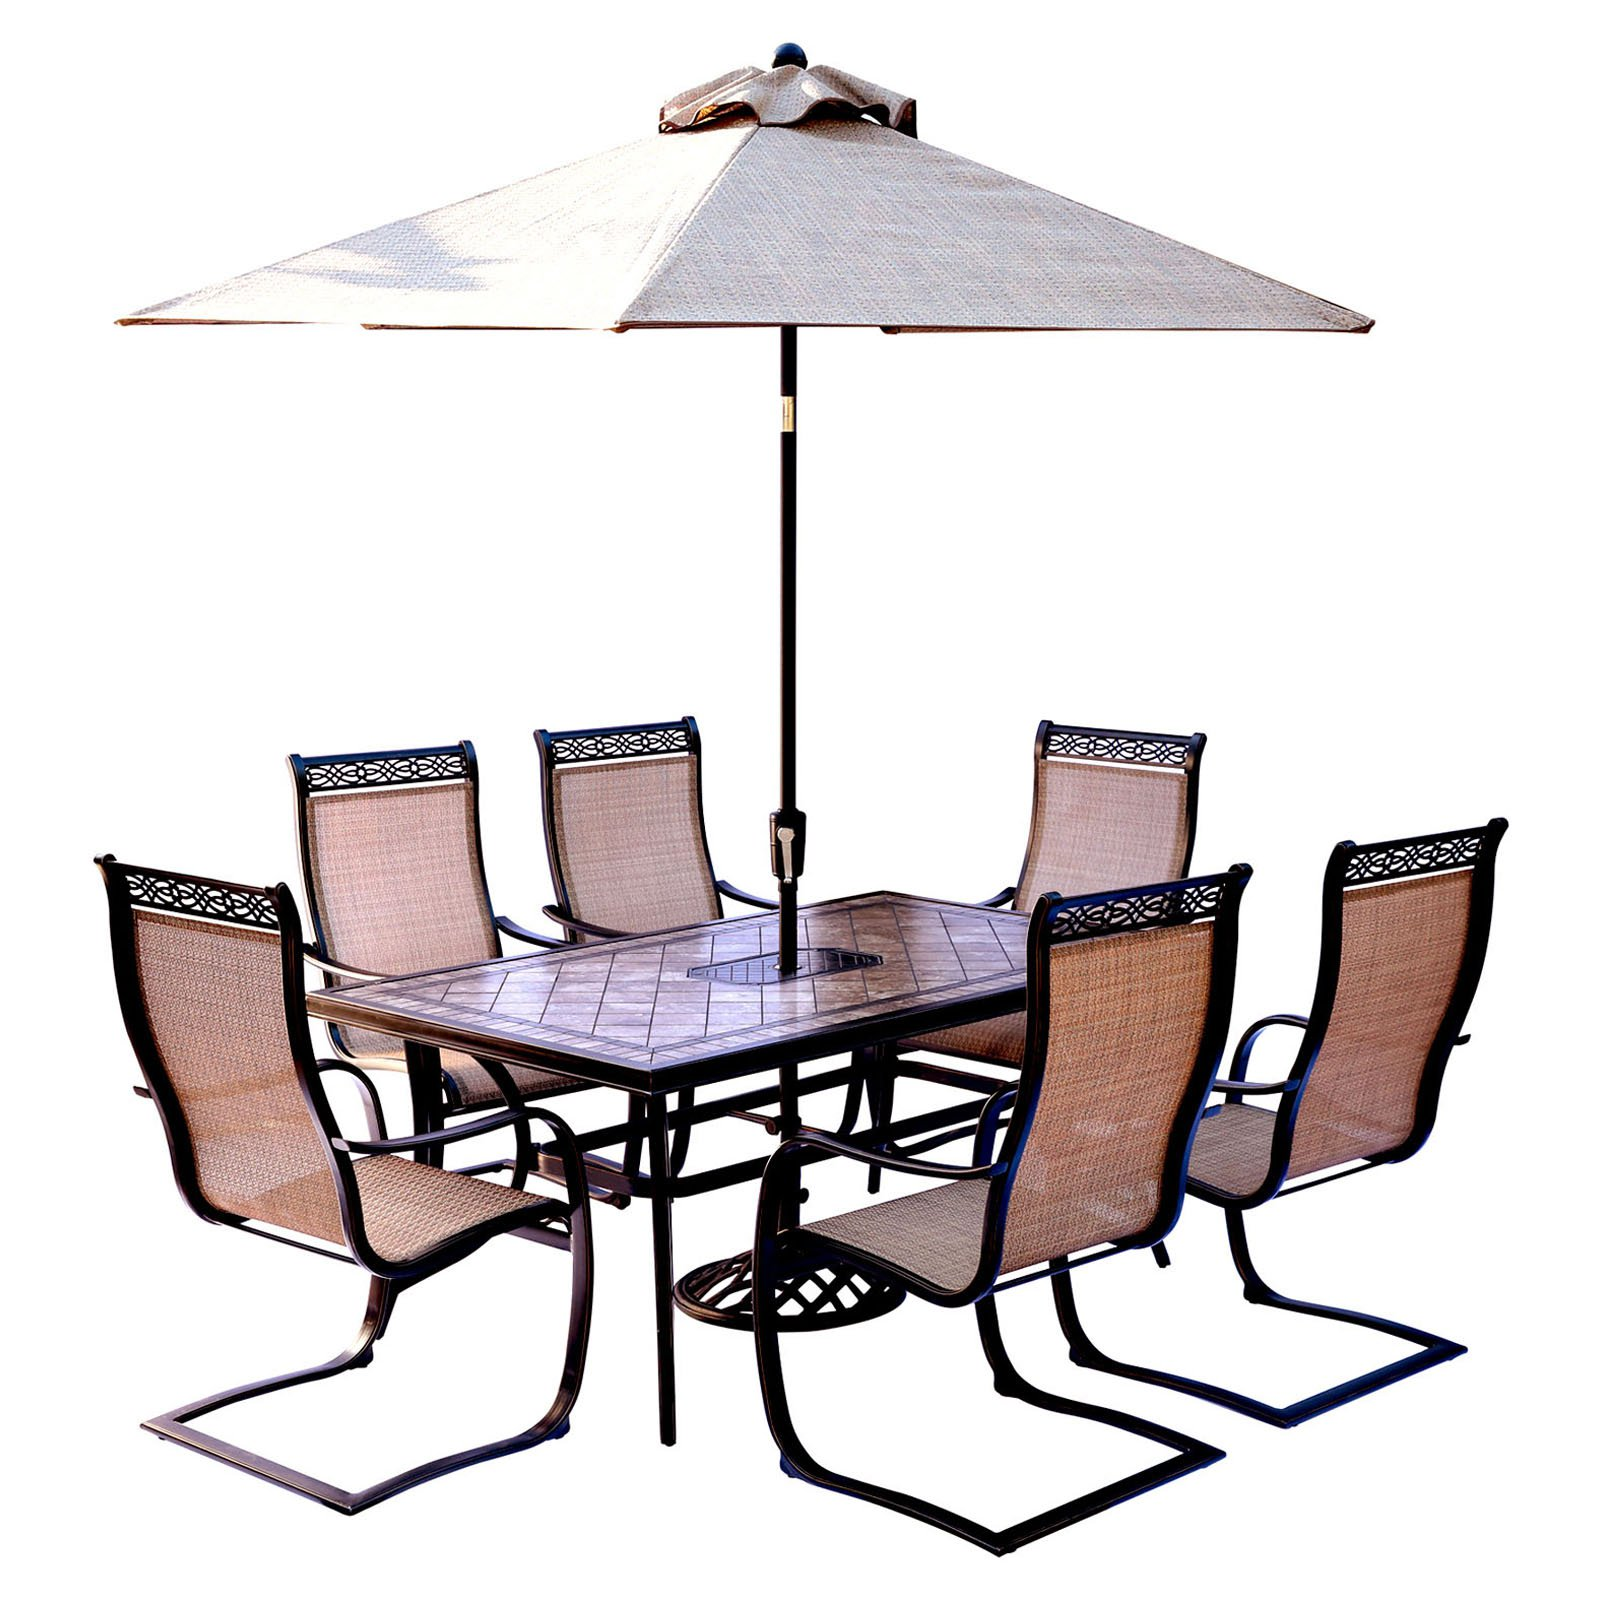 "Hanover Outdoor Monaco 7-Piece Sling Dining Set with 42"" x 84"" Glass-Top Table and 6 C-Spring Chairs, Cedar"